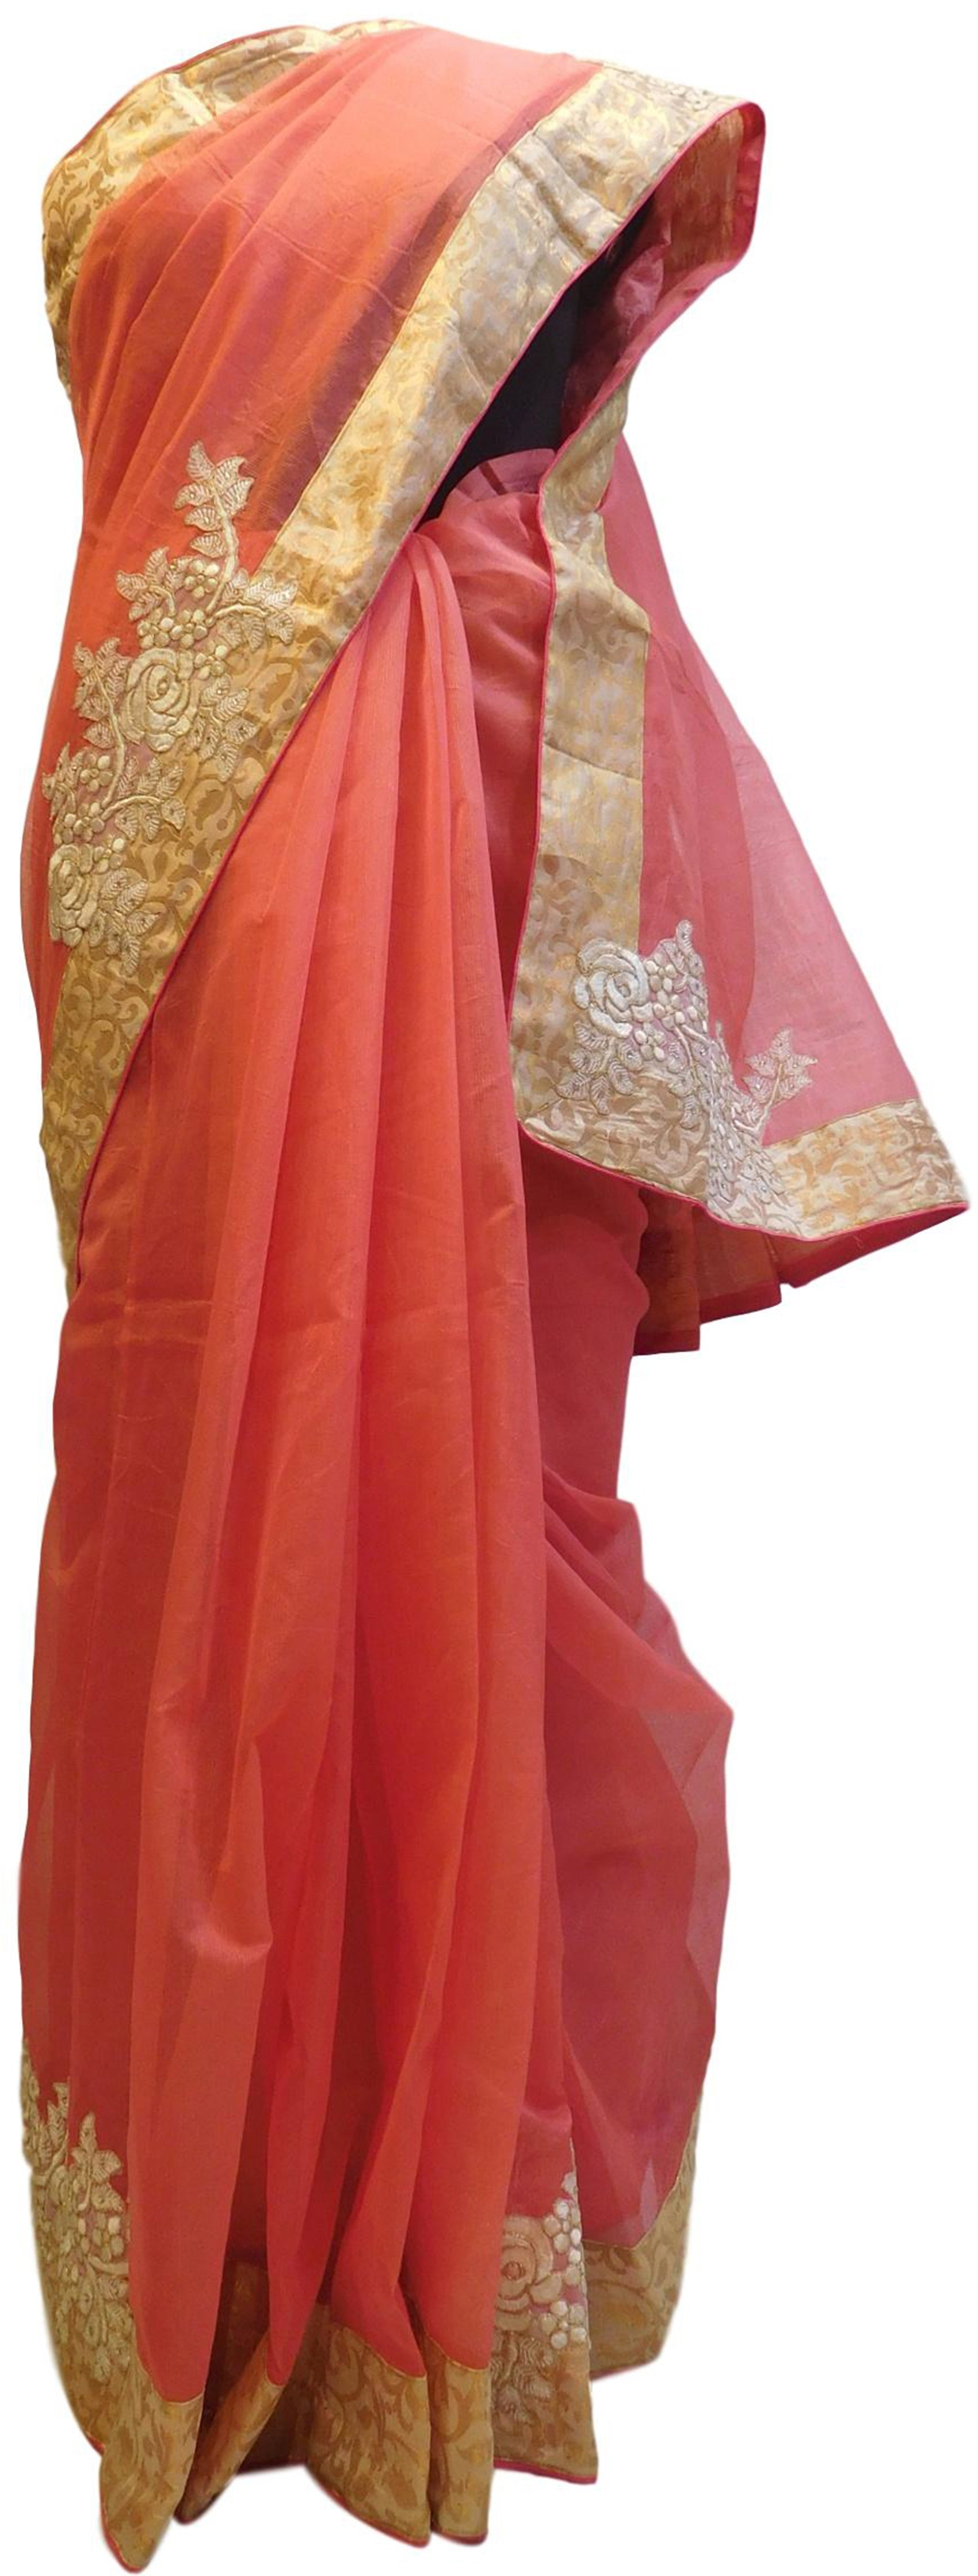 Gajari Designer PartyWear Pure Supernet (Cotton) Thread Zari Stone Work Saree Sari With Beige Border